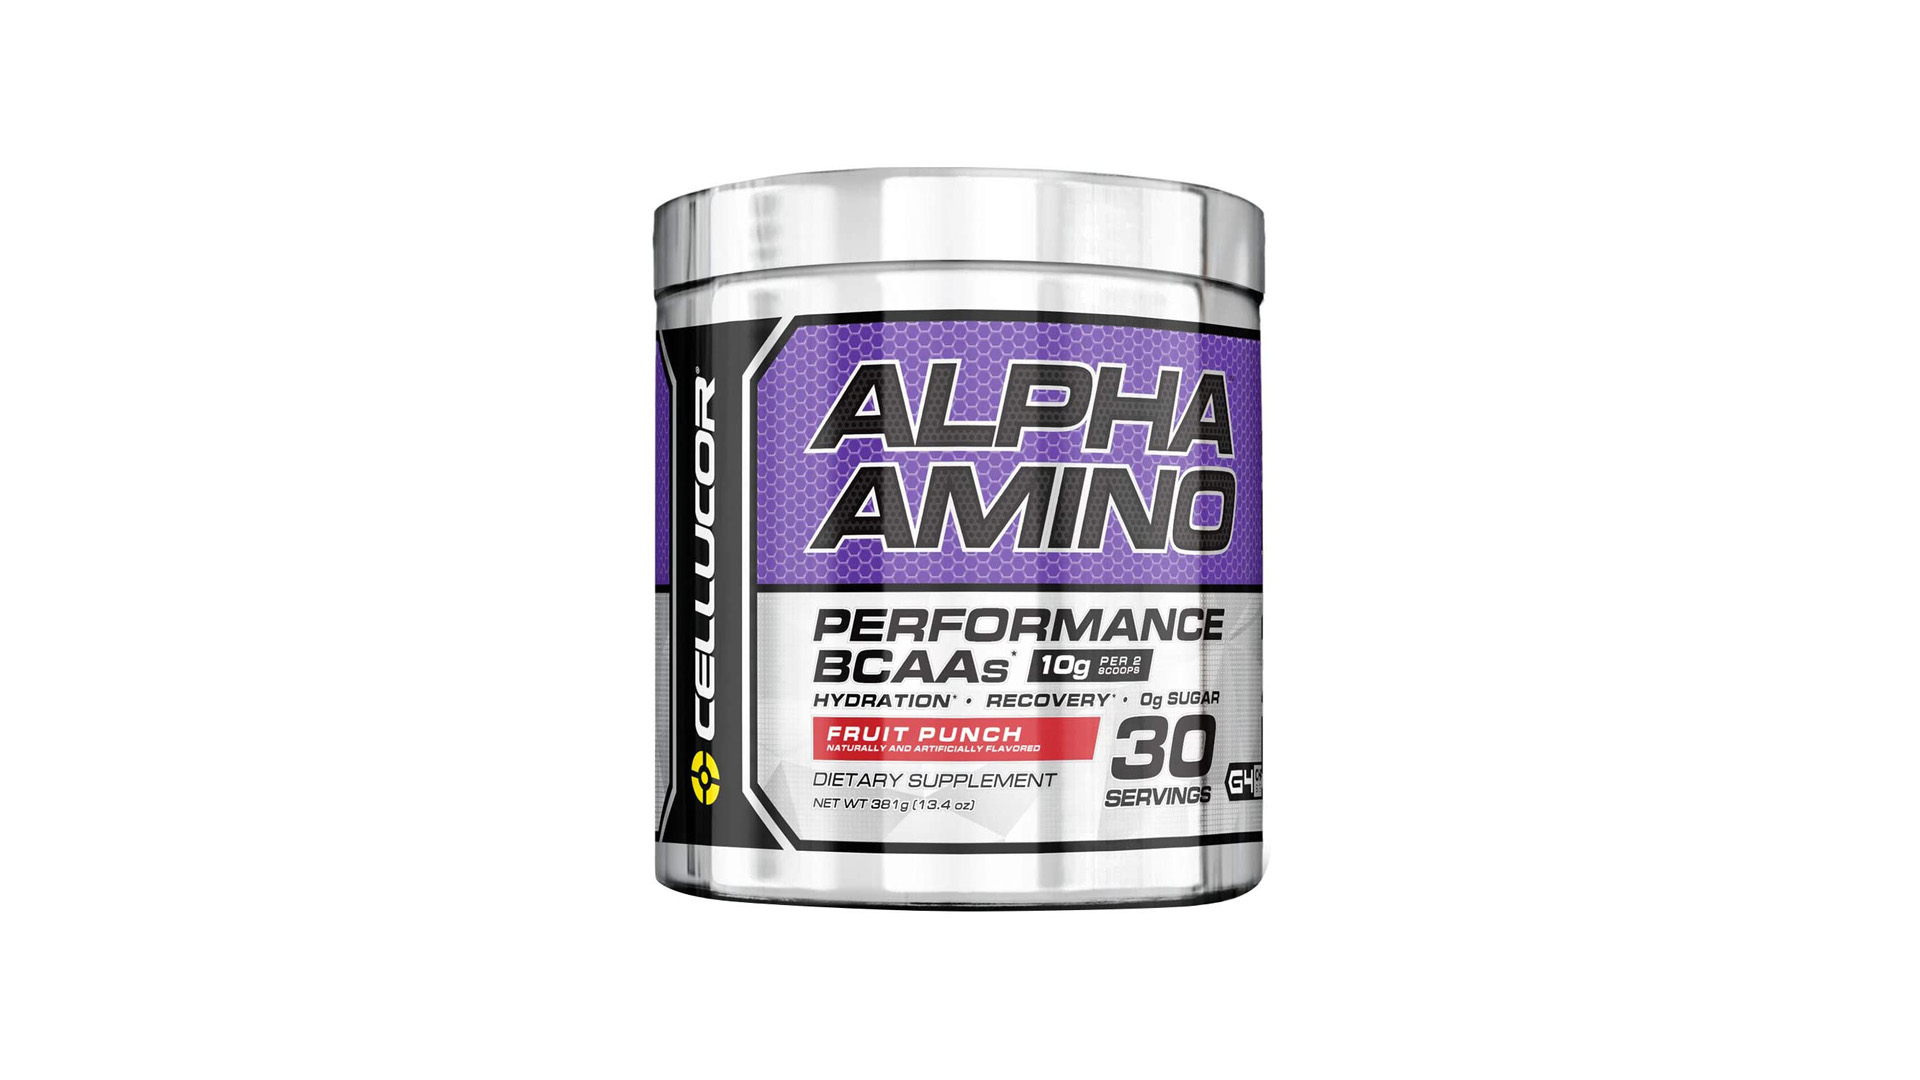 Alpha Amino by Cellucor